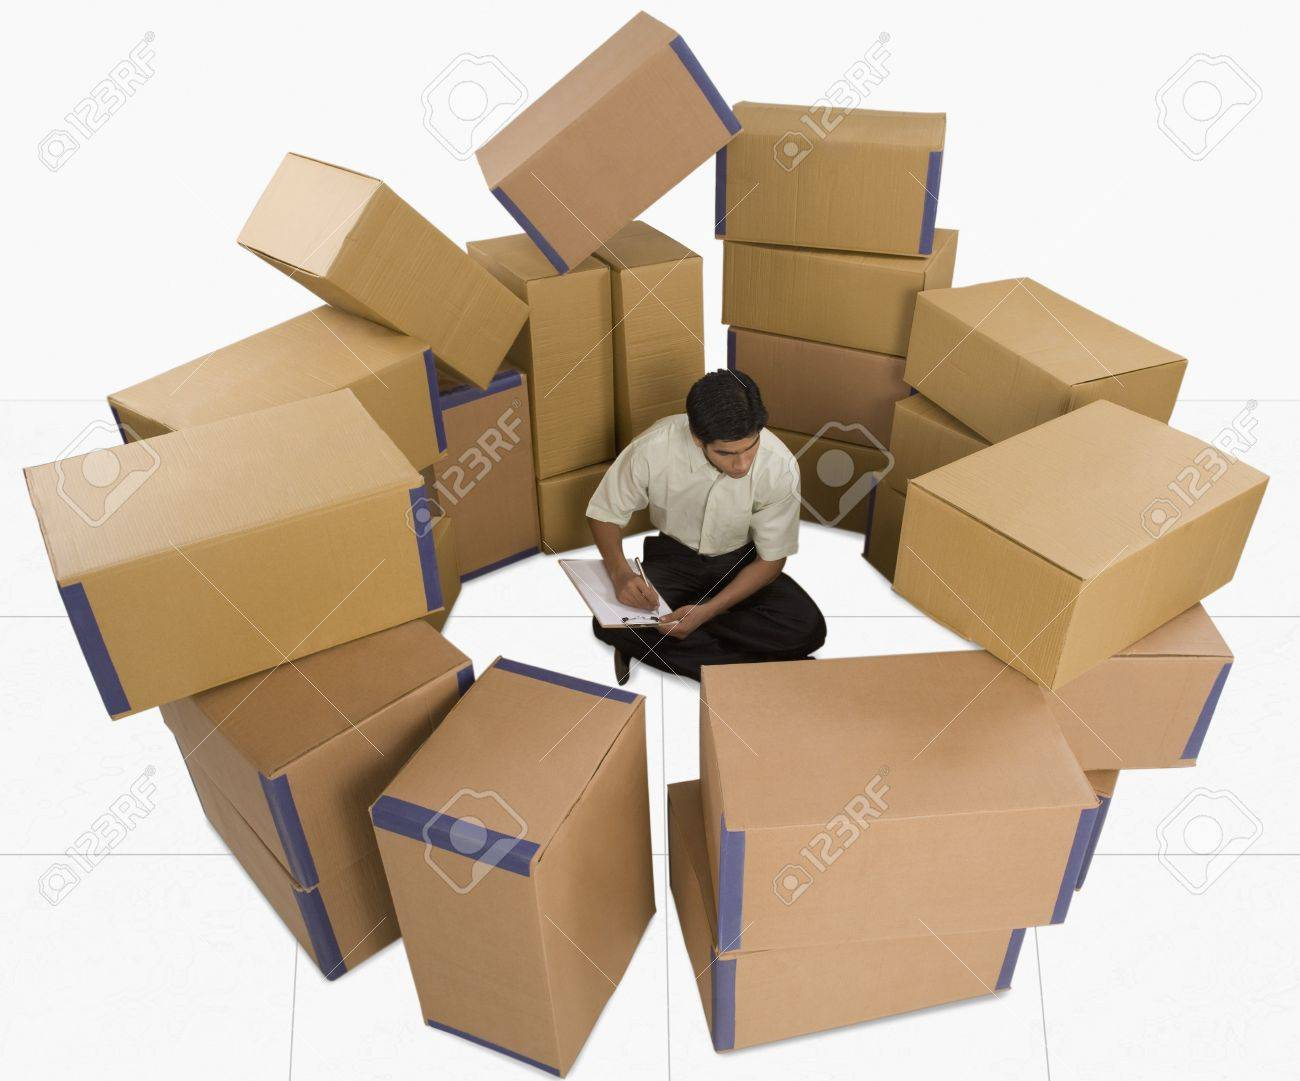 Store incharge sitting with cardboard boxes checking inventory Stock Photo - 10168454